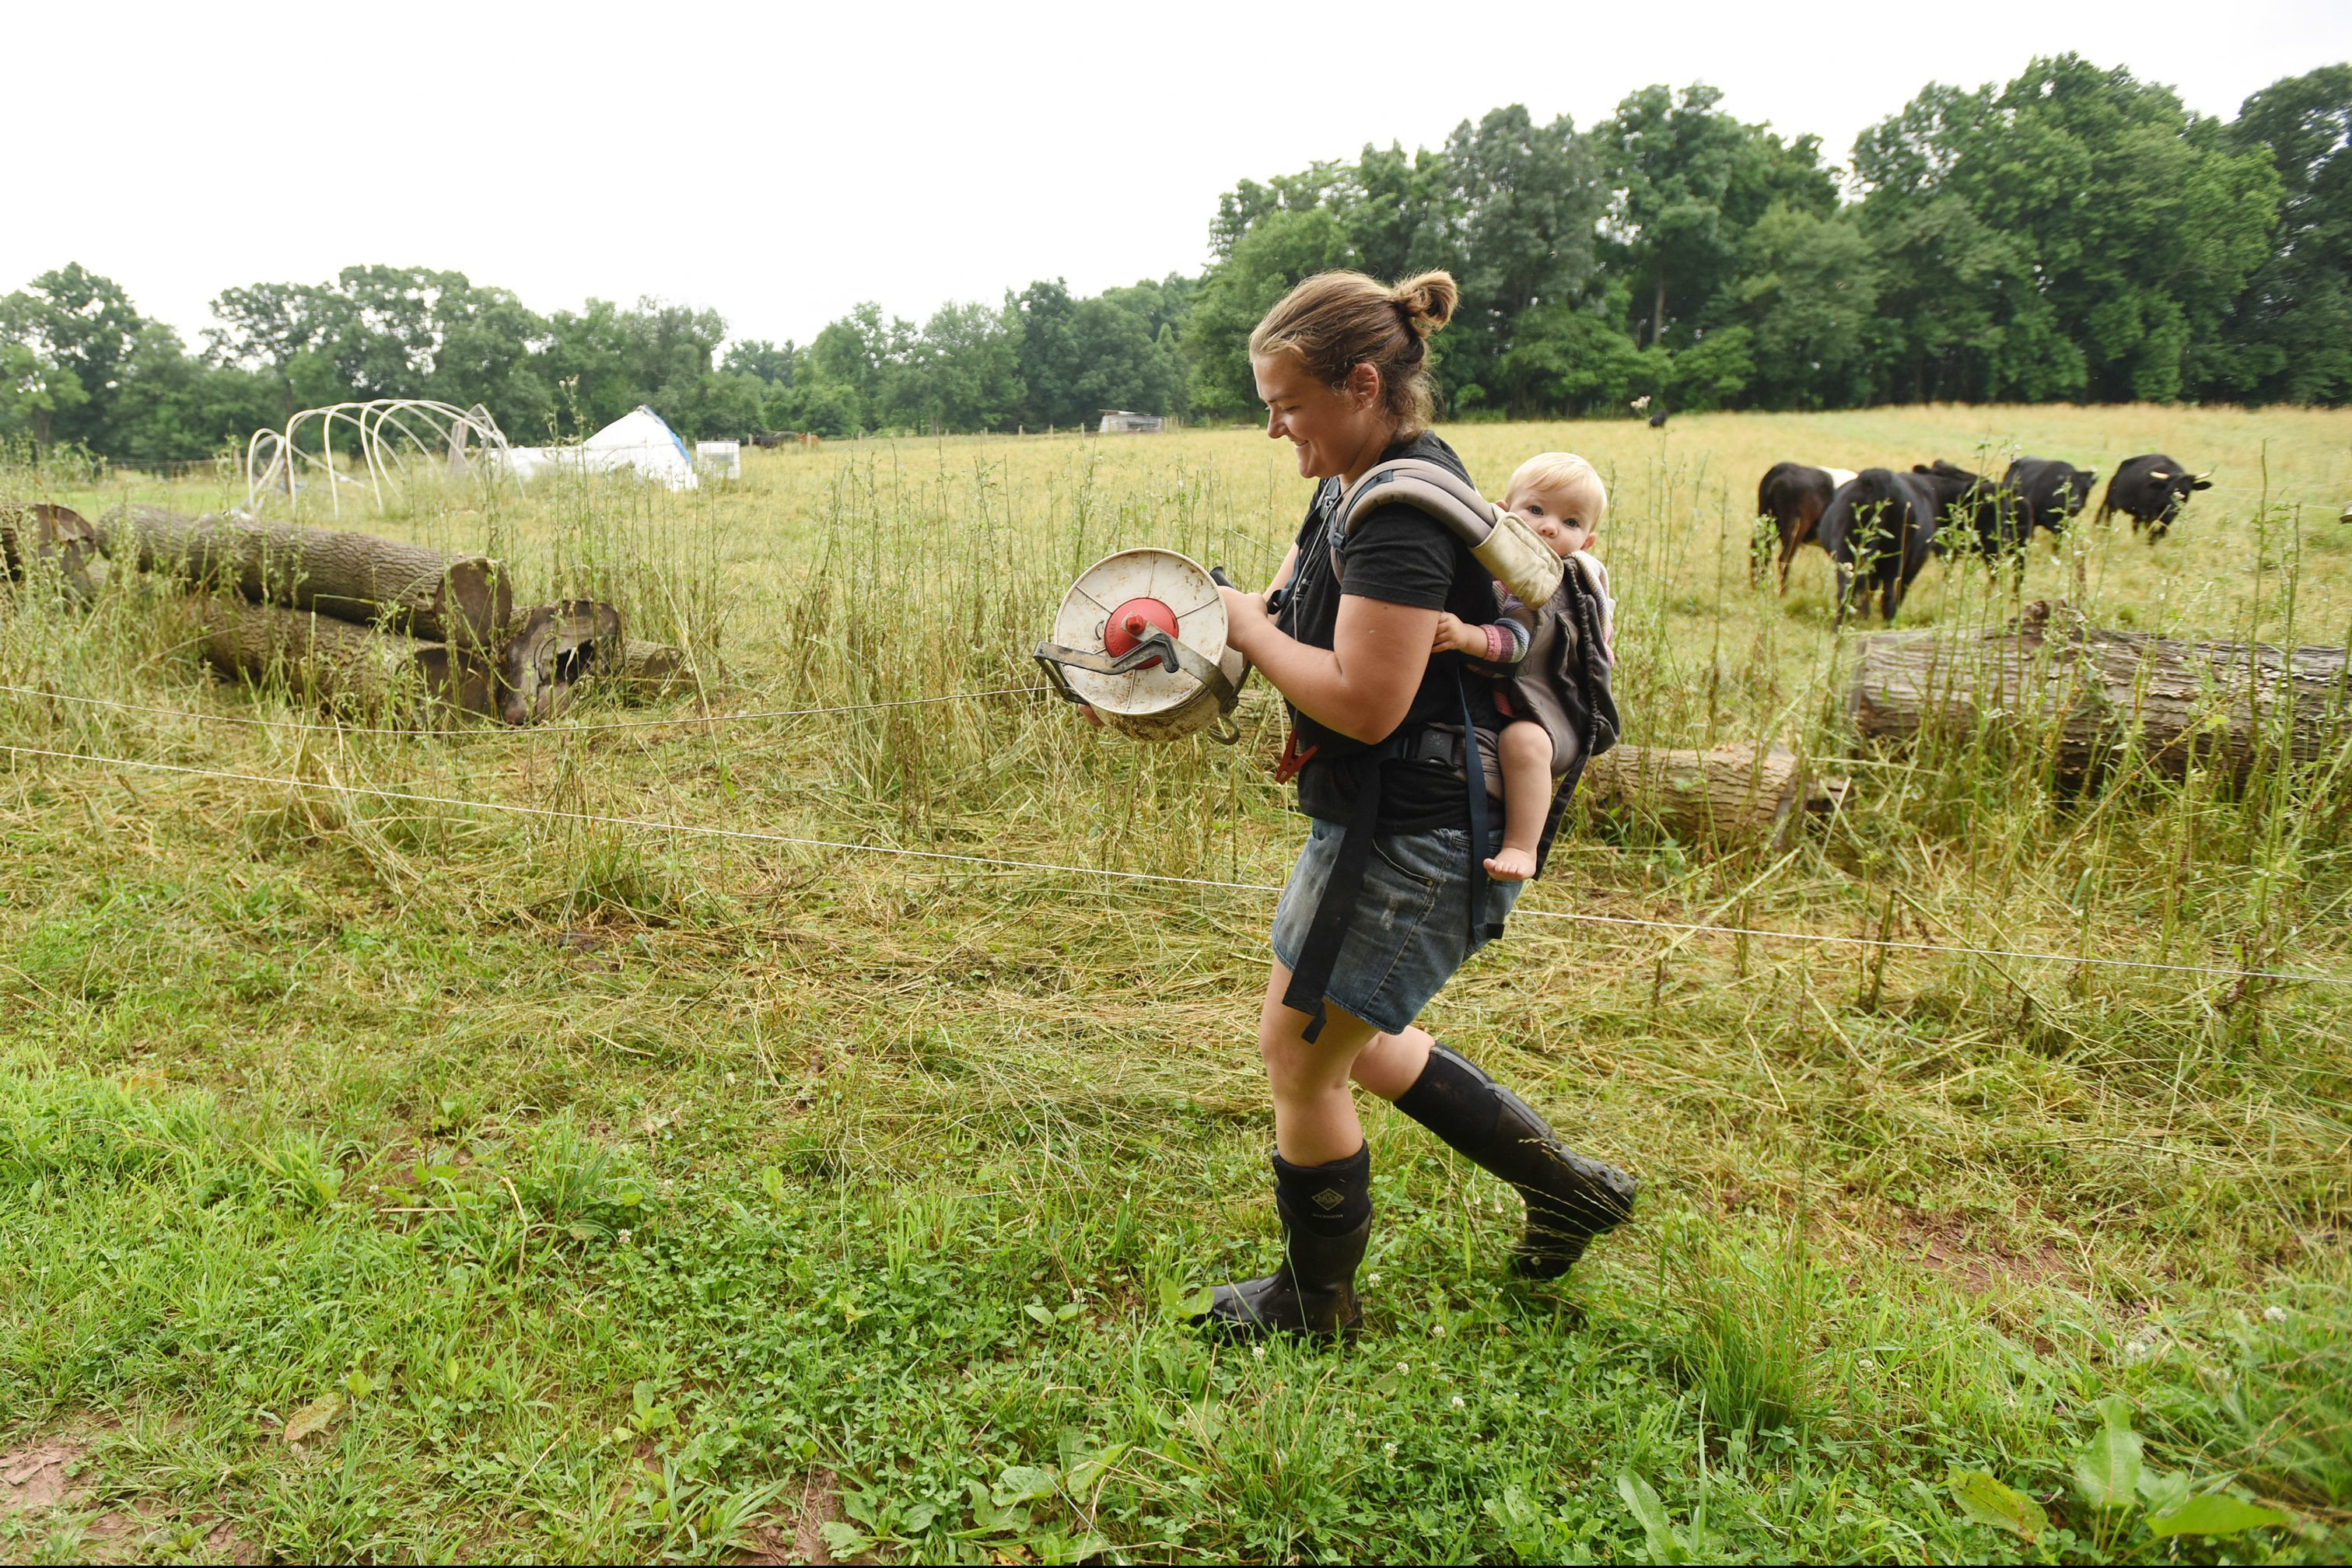 """Mary Benton, along with her 10-month-old daughter Isabelle, restrings an electric fence at the """"Snouts and Sprouts"""" Farm in Pottstown, PA., on Wednesday, June 27, 2018."""